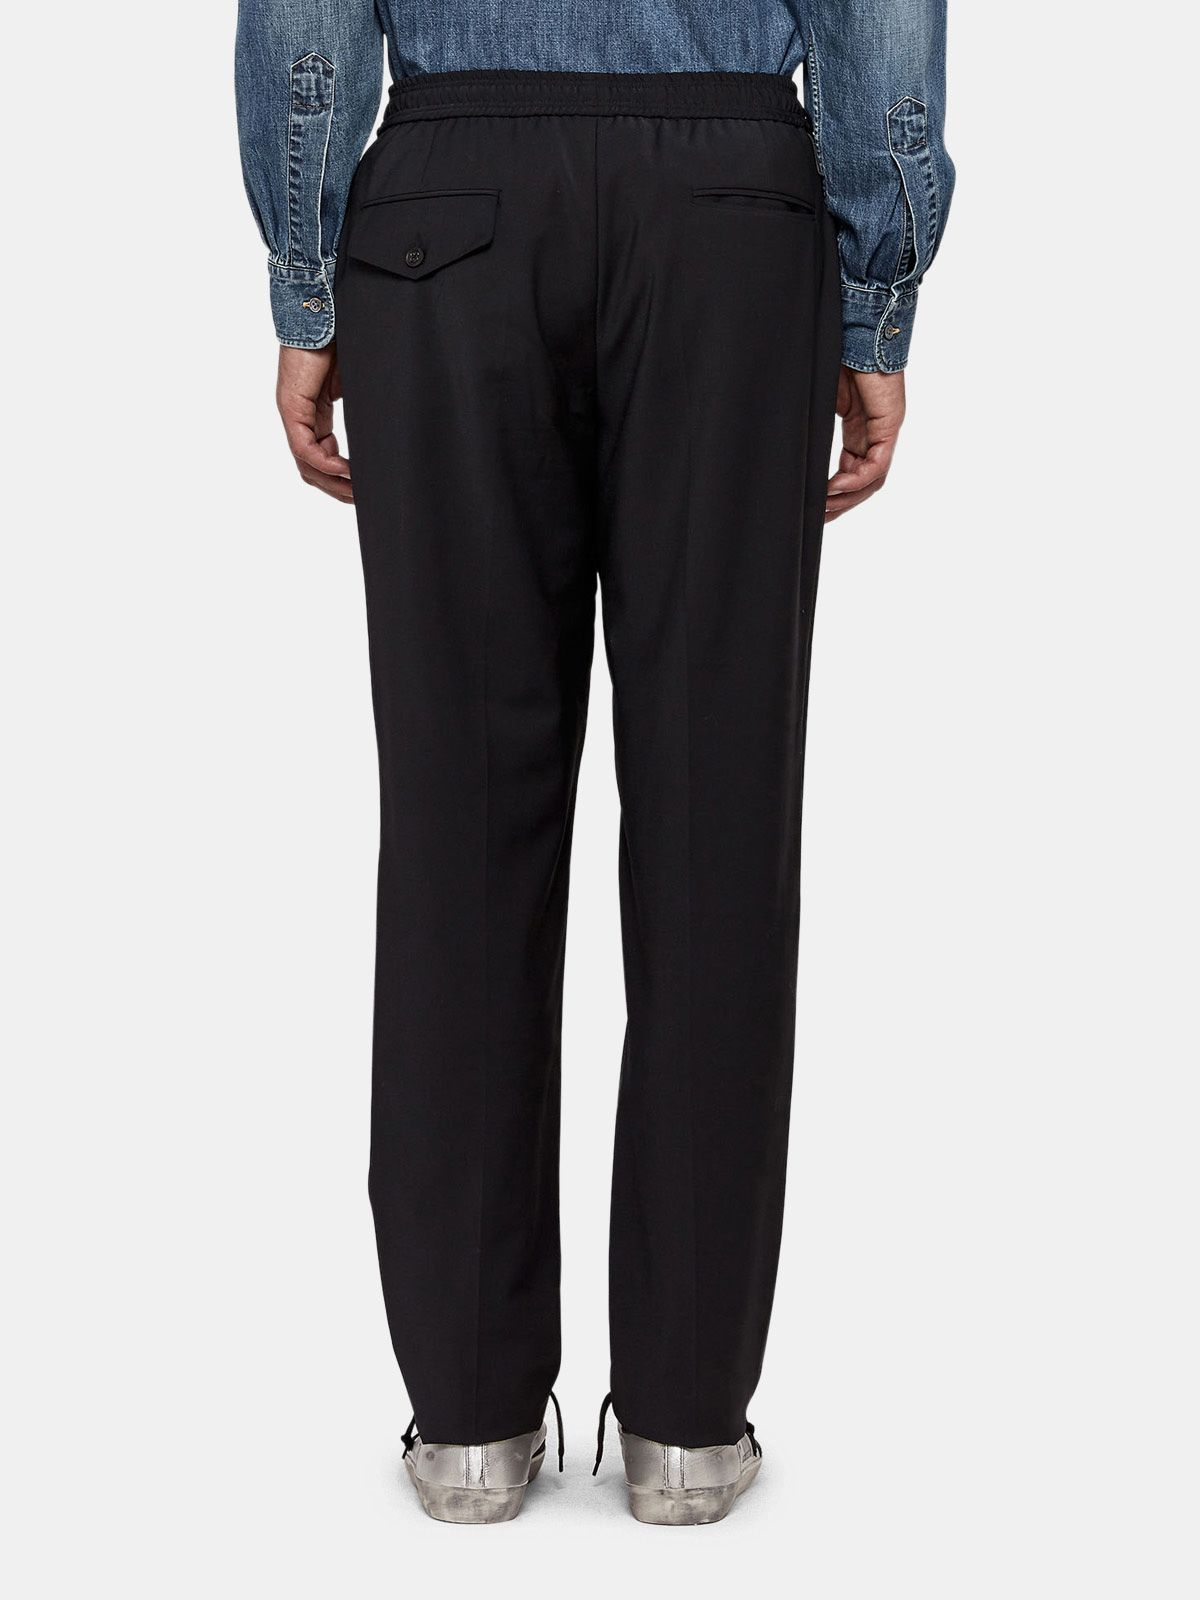 Golden Goose - Ryuu trousers in technical fabric with elasticated waist in